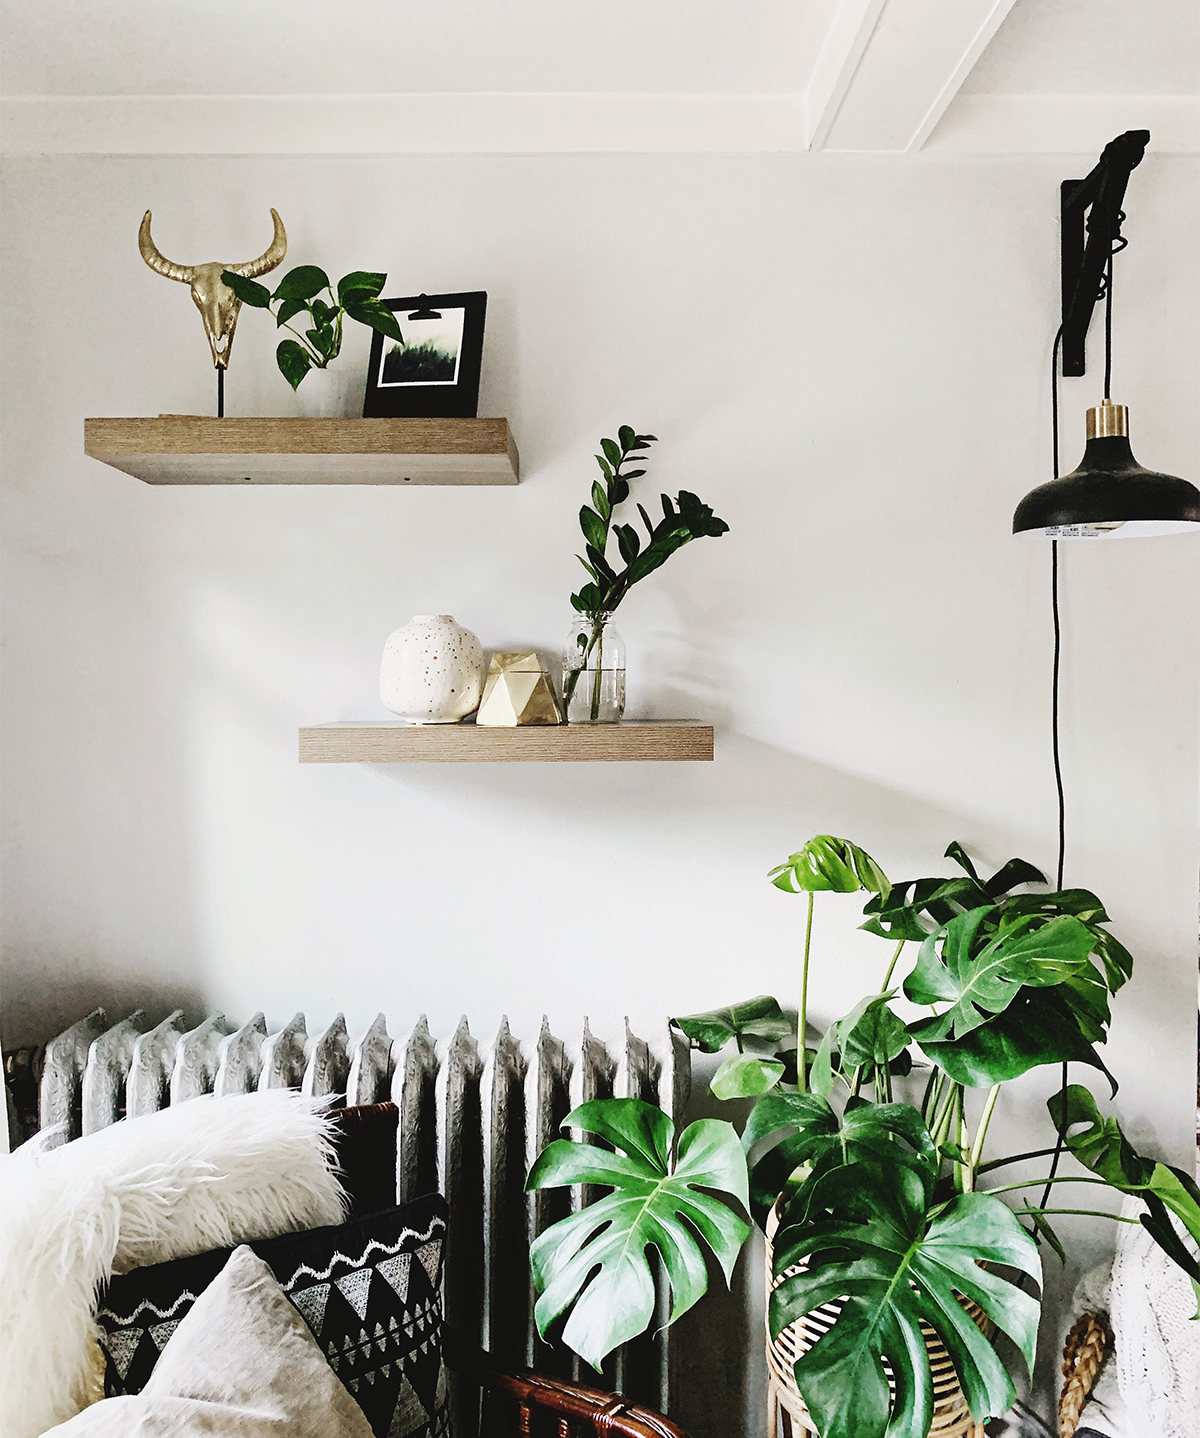 Photo by @kellybananatree of floating shelves next to Monstera plant